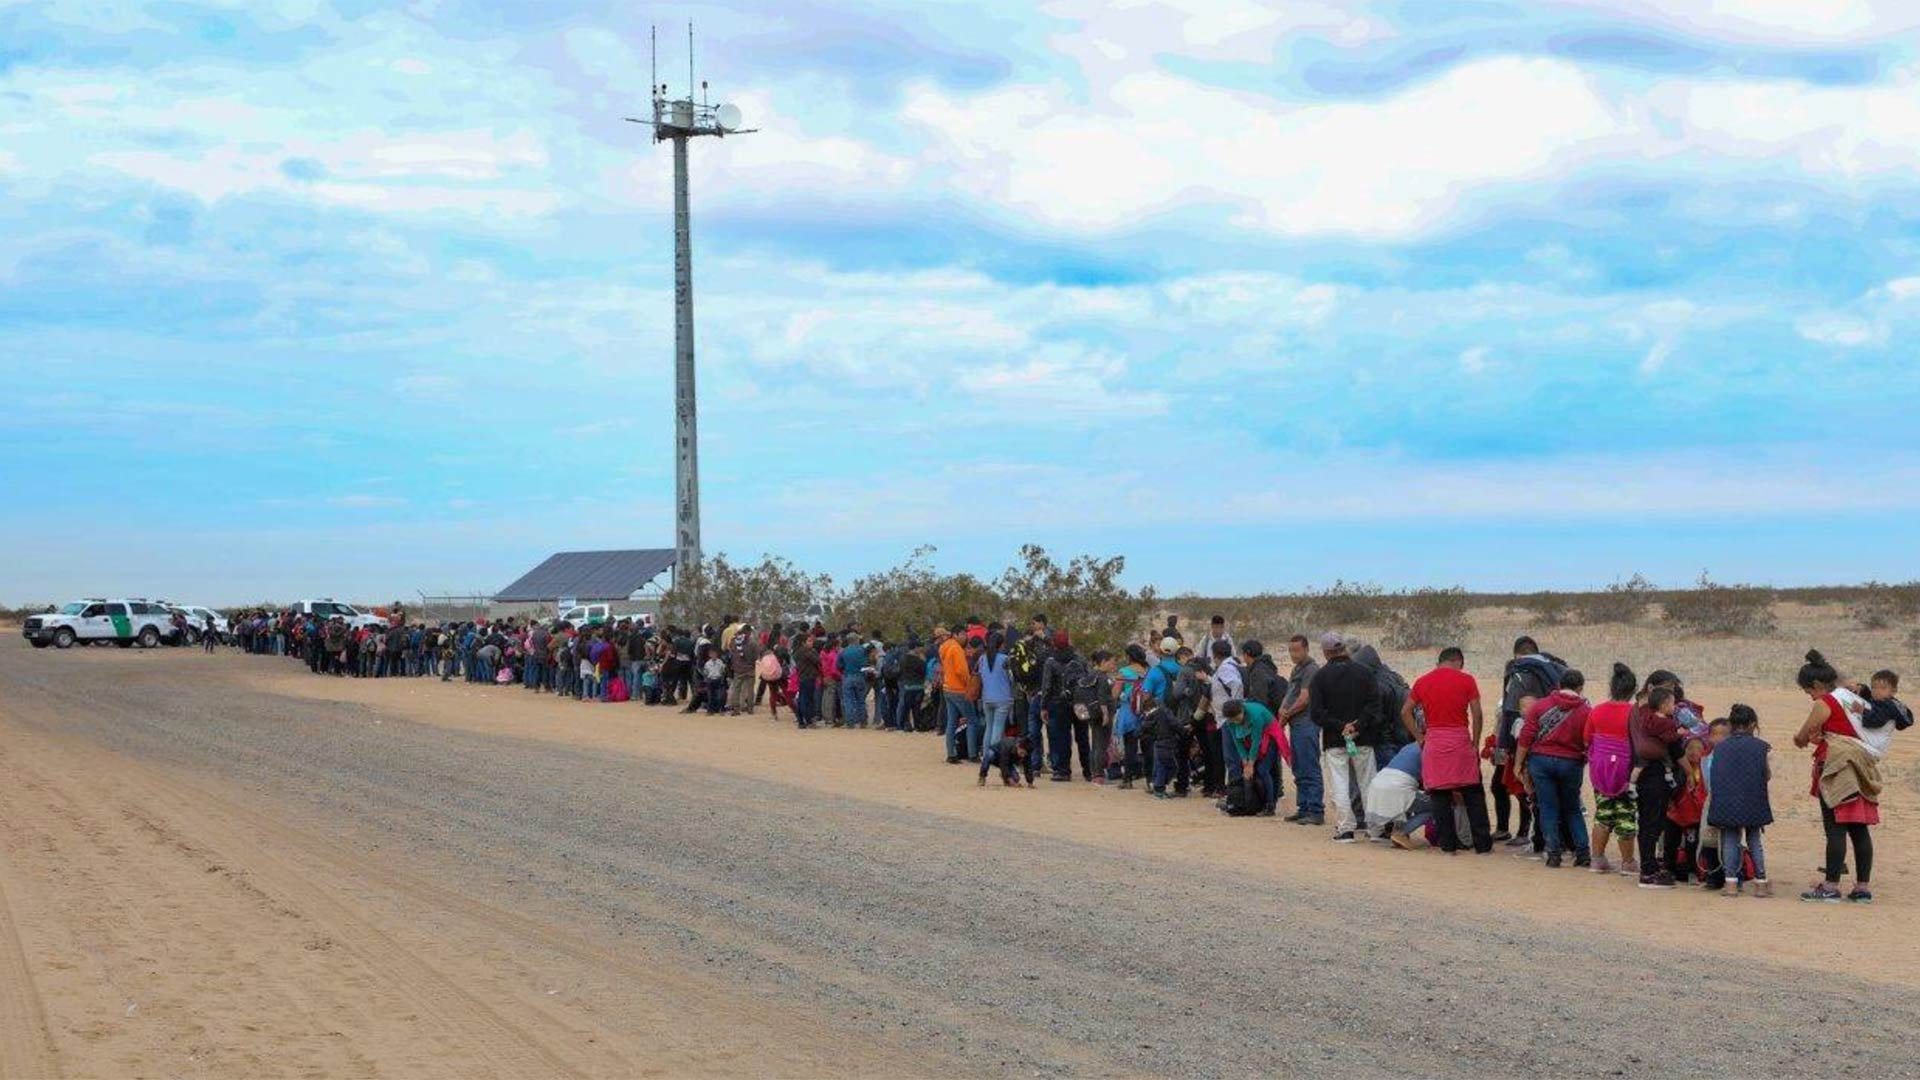 Migrants who crossed the border near Yuma in tunnels under the border fence stand in line waiting for Border Patrol agents to process them on Jan. 14, 2019.